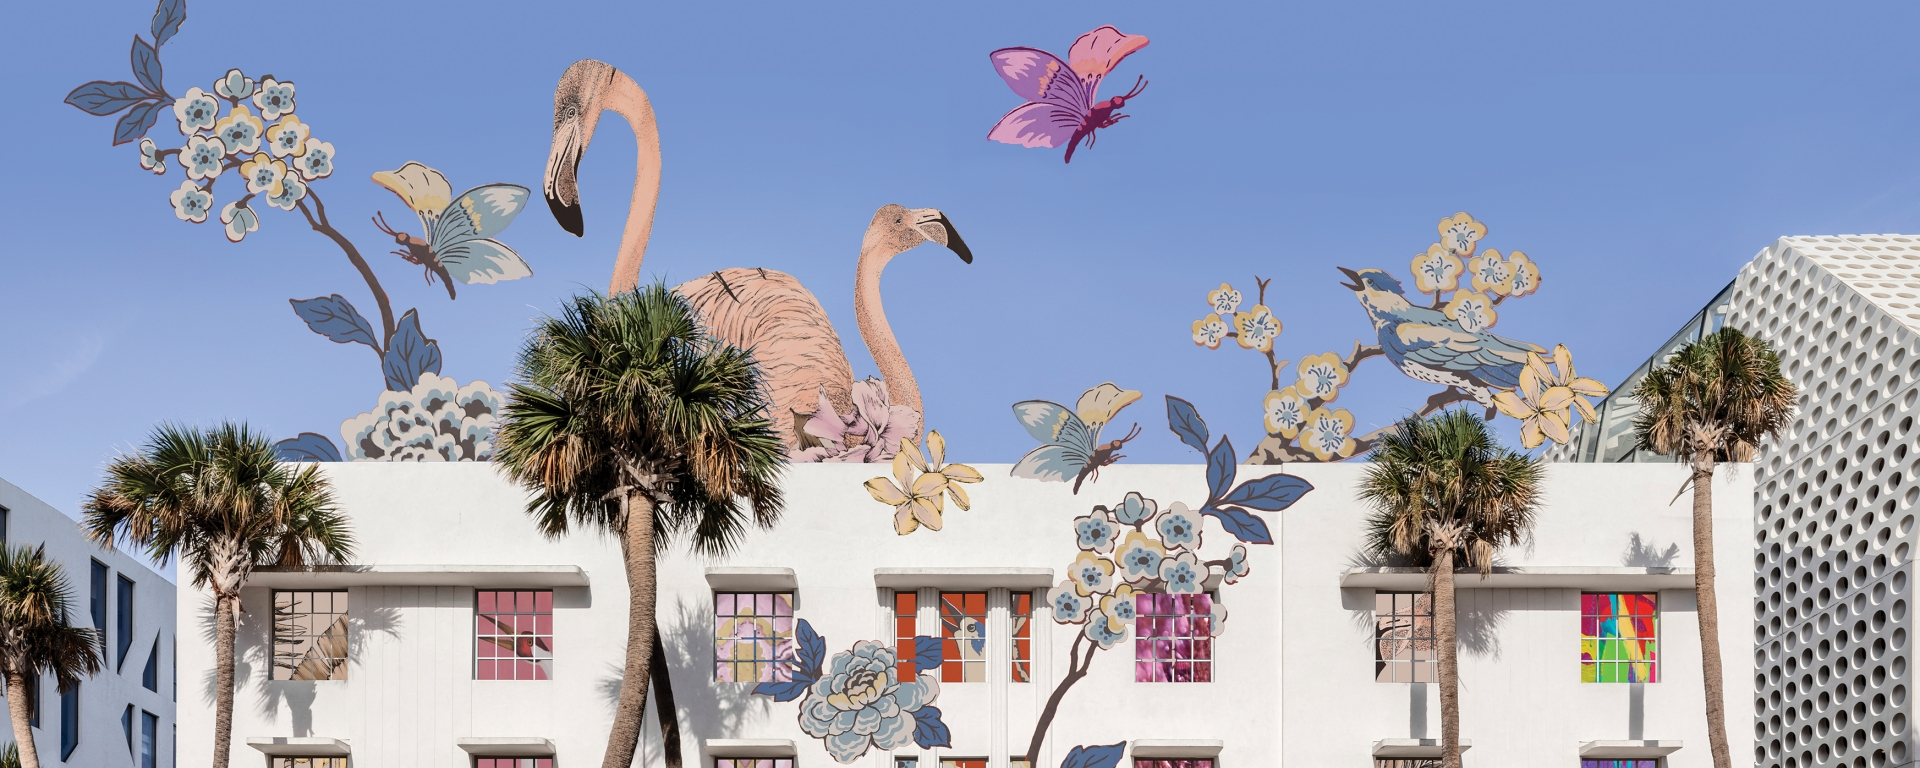 Faena Bazaar Building Exterior Animation